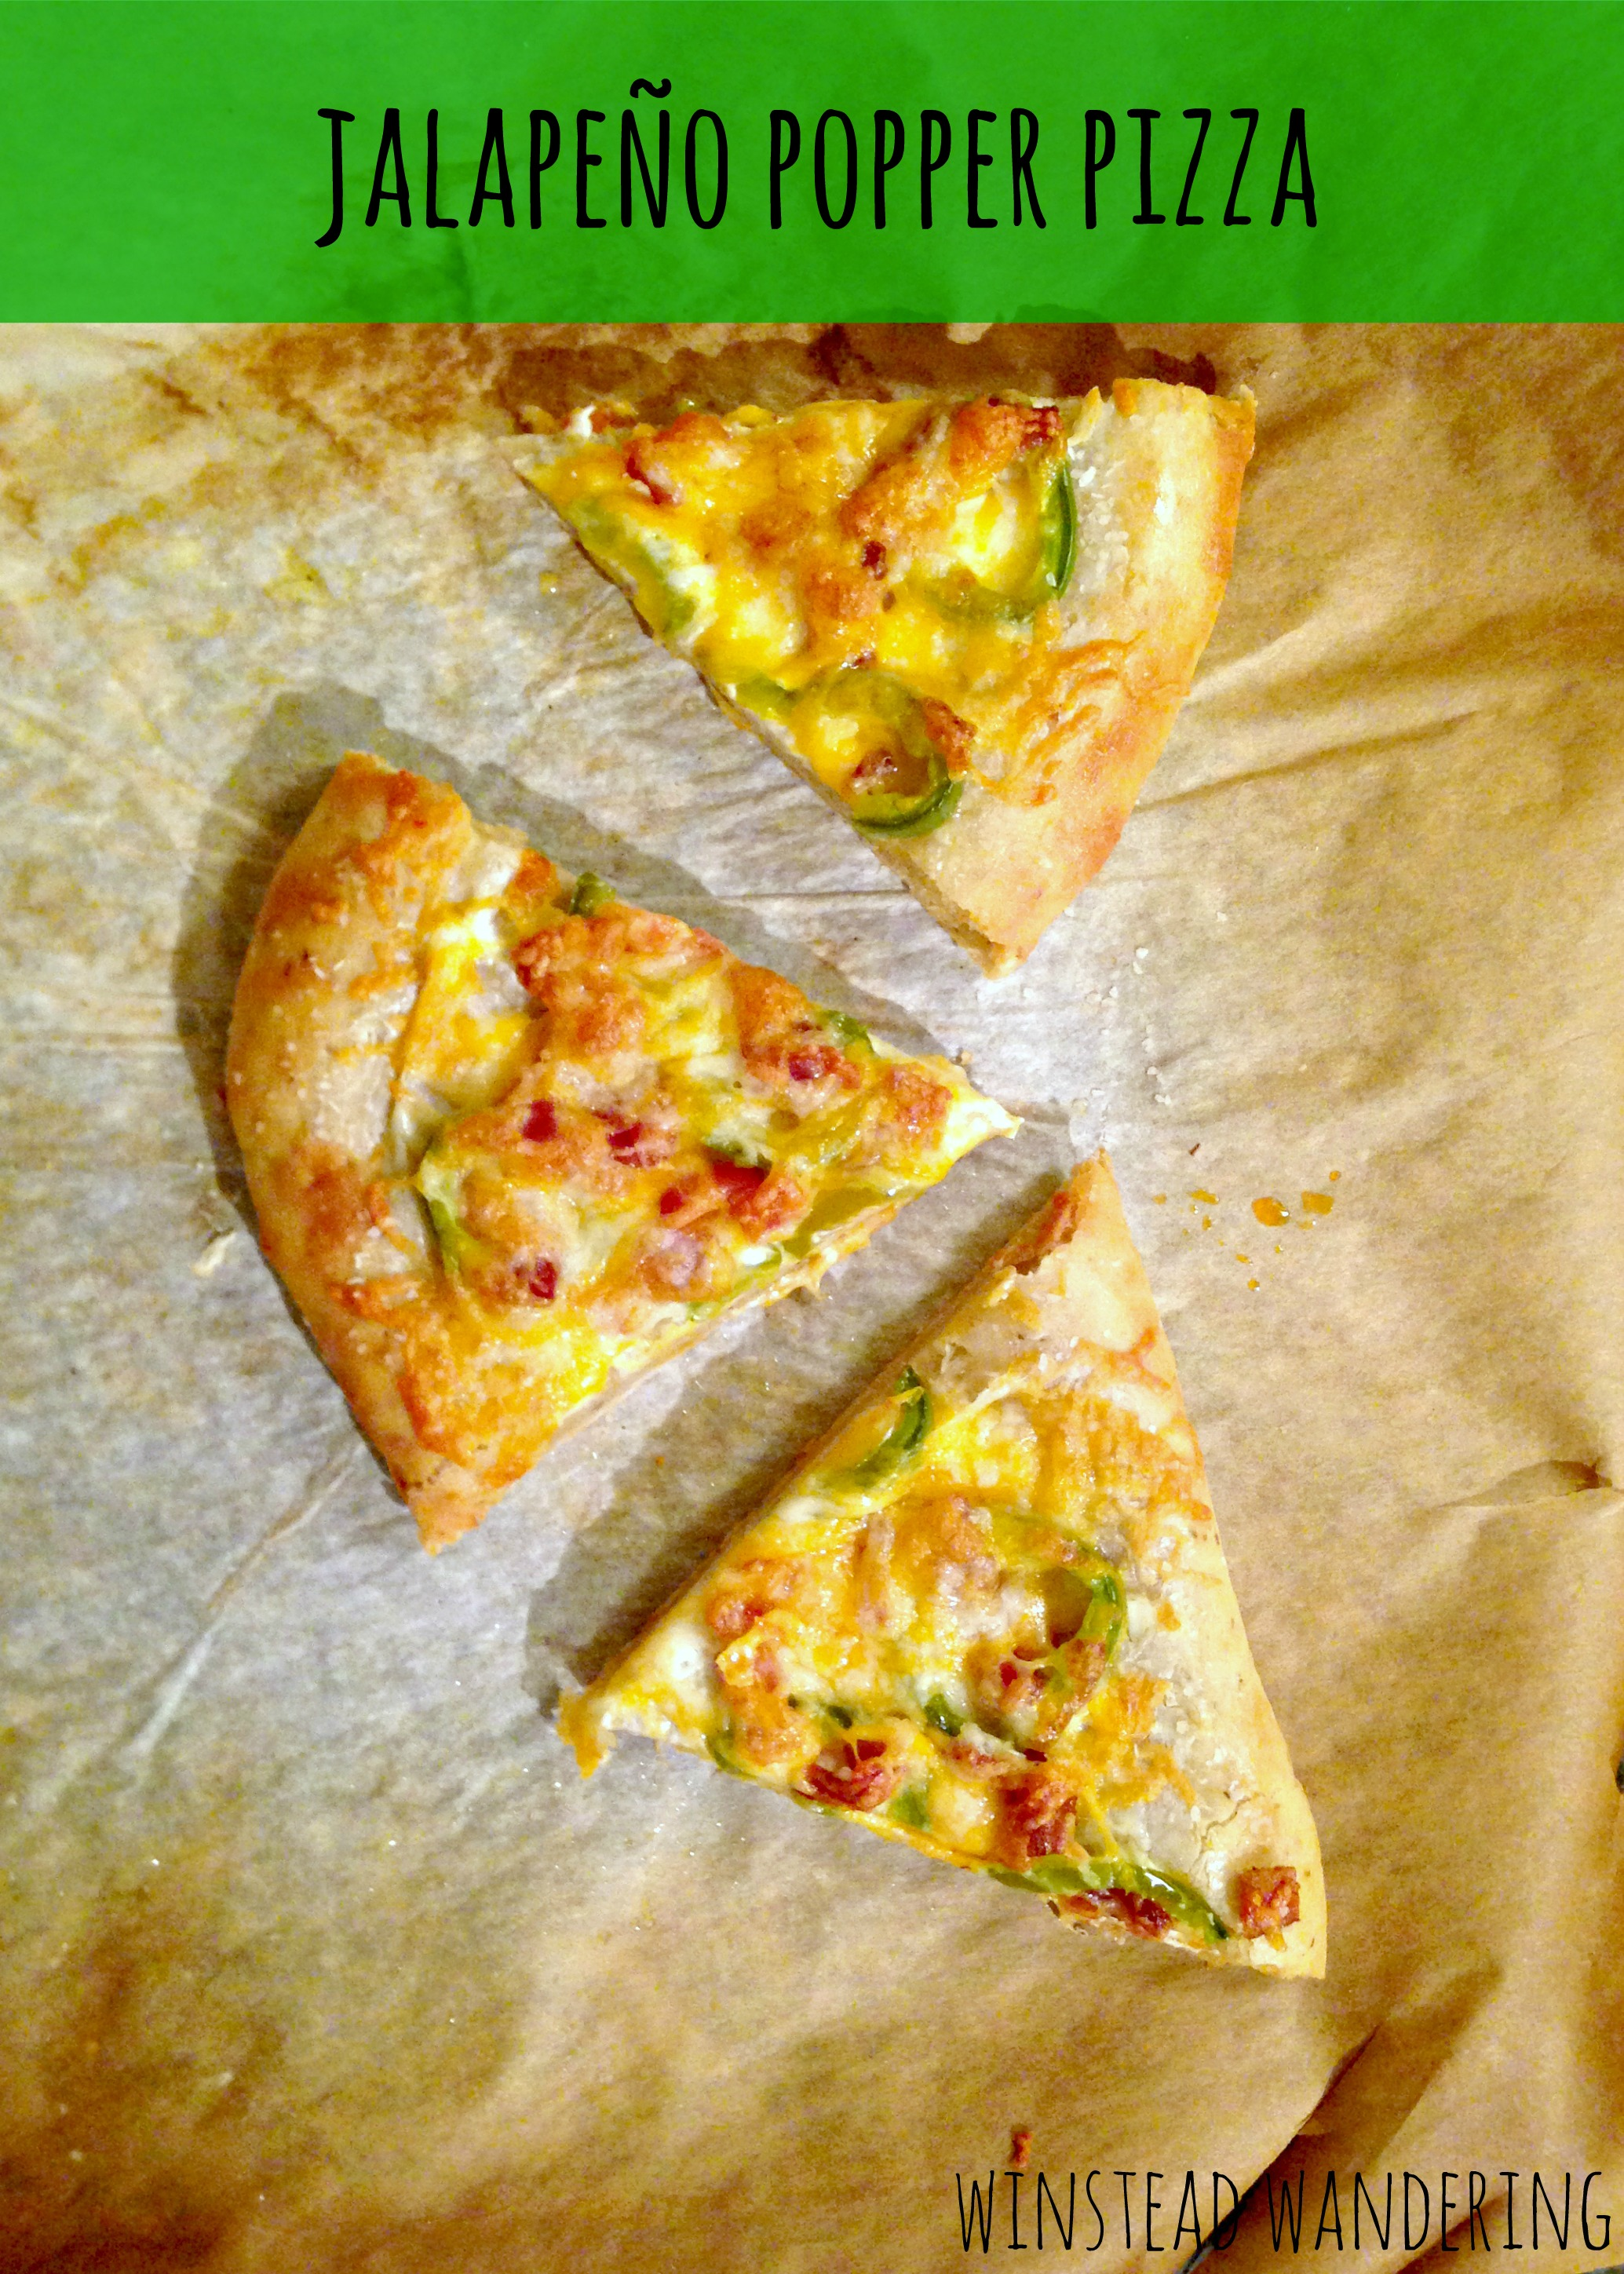 All the goodness of a jalapeño popper on a perfectly-cooked pizza | winstead wandering